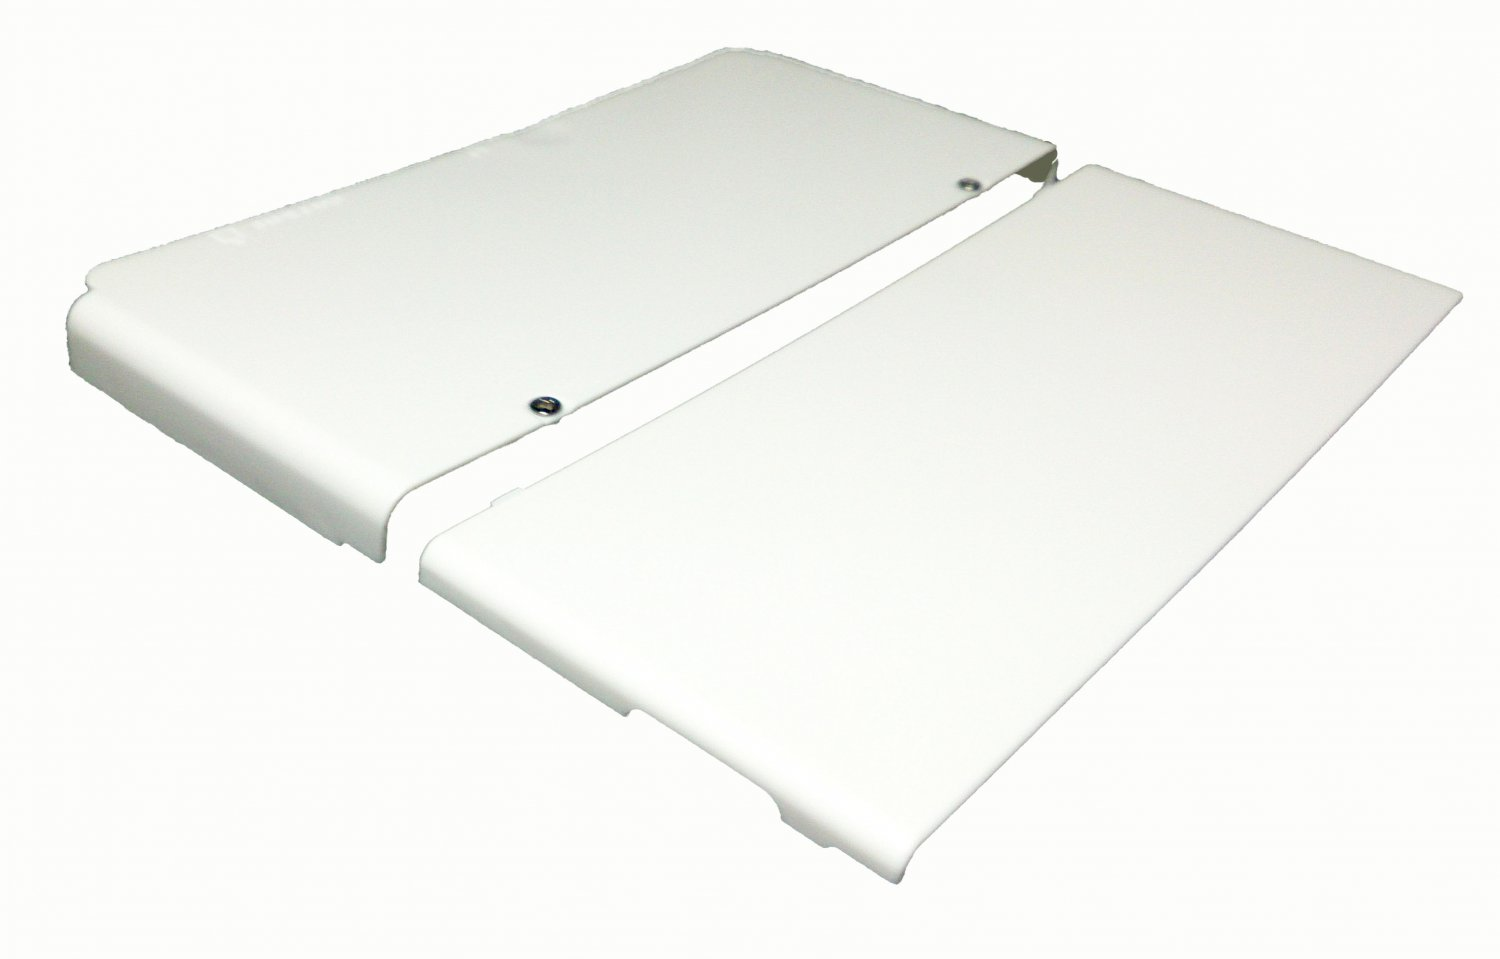 New 3DS White Cover Plate w/ Screws 3rd Party Great for Artwork!